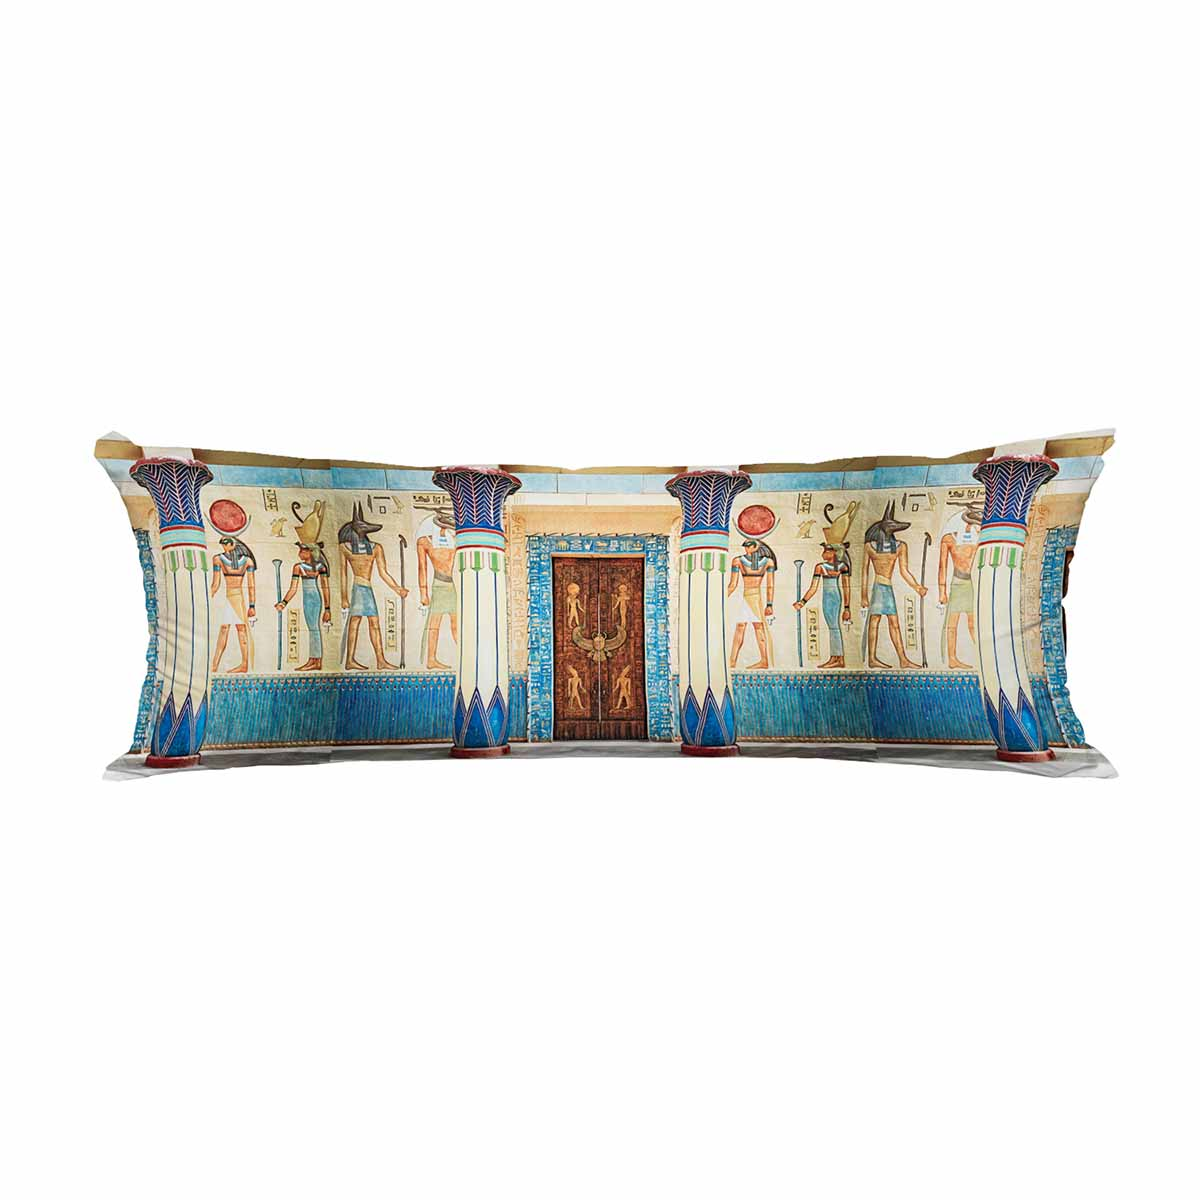 pkqwtm ancient egyptian writing stone egypt ancient egypt long body pillow case cover pillow cushion size 20x60 inches